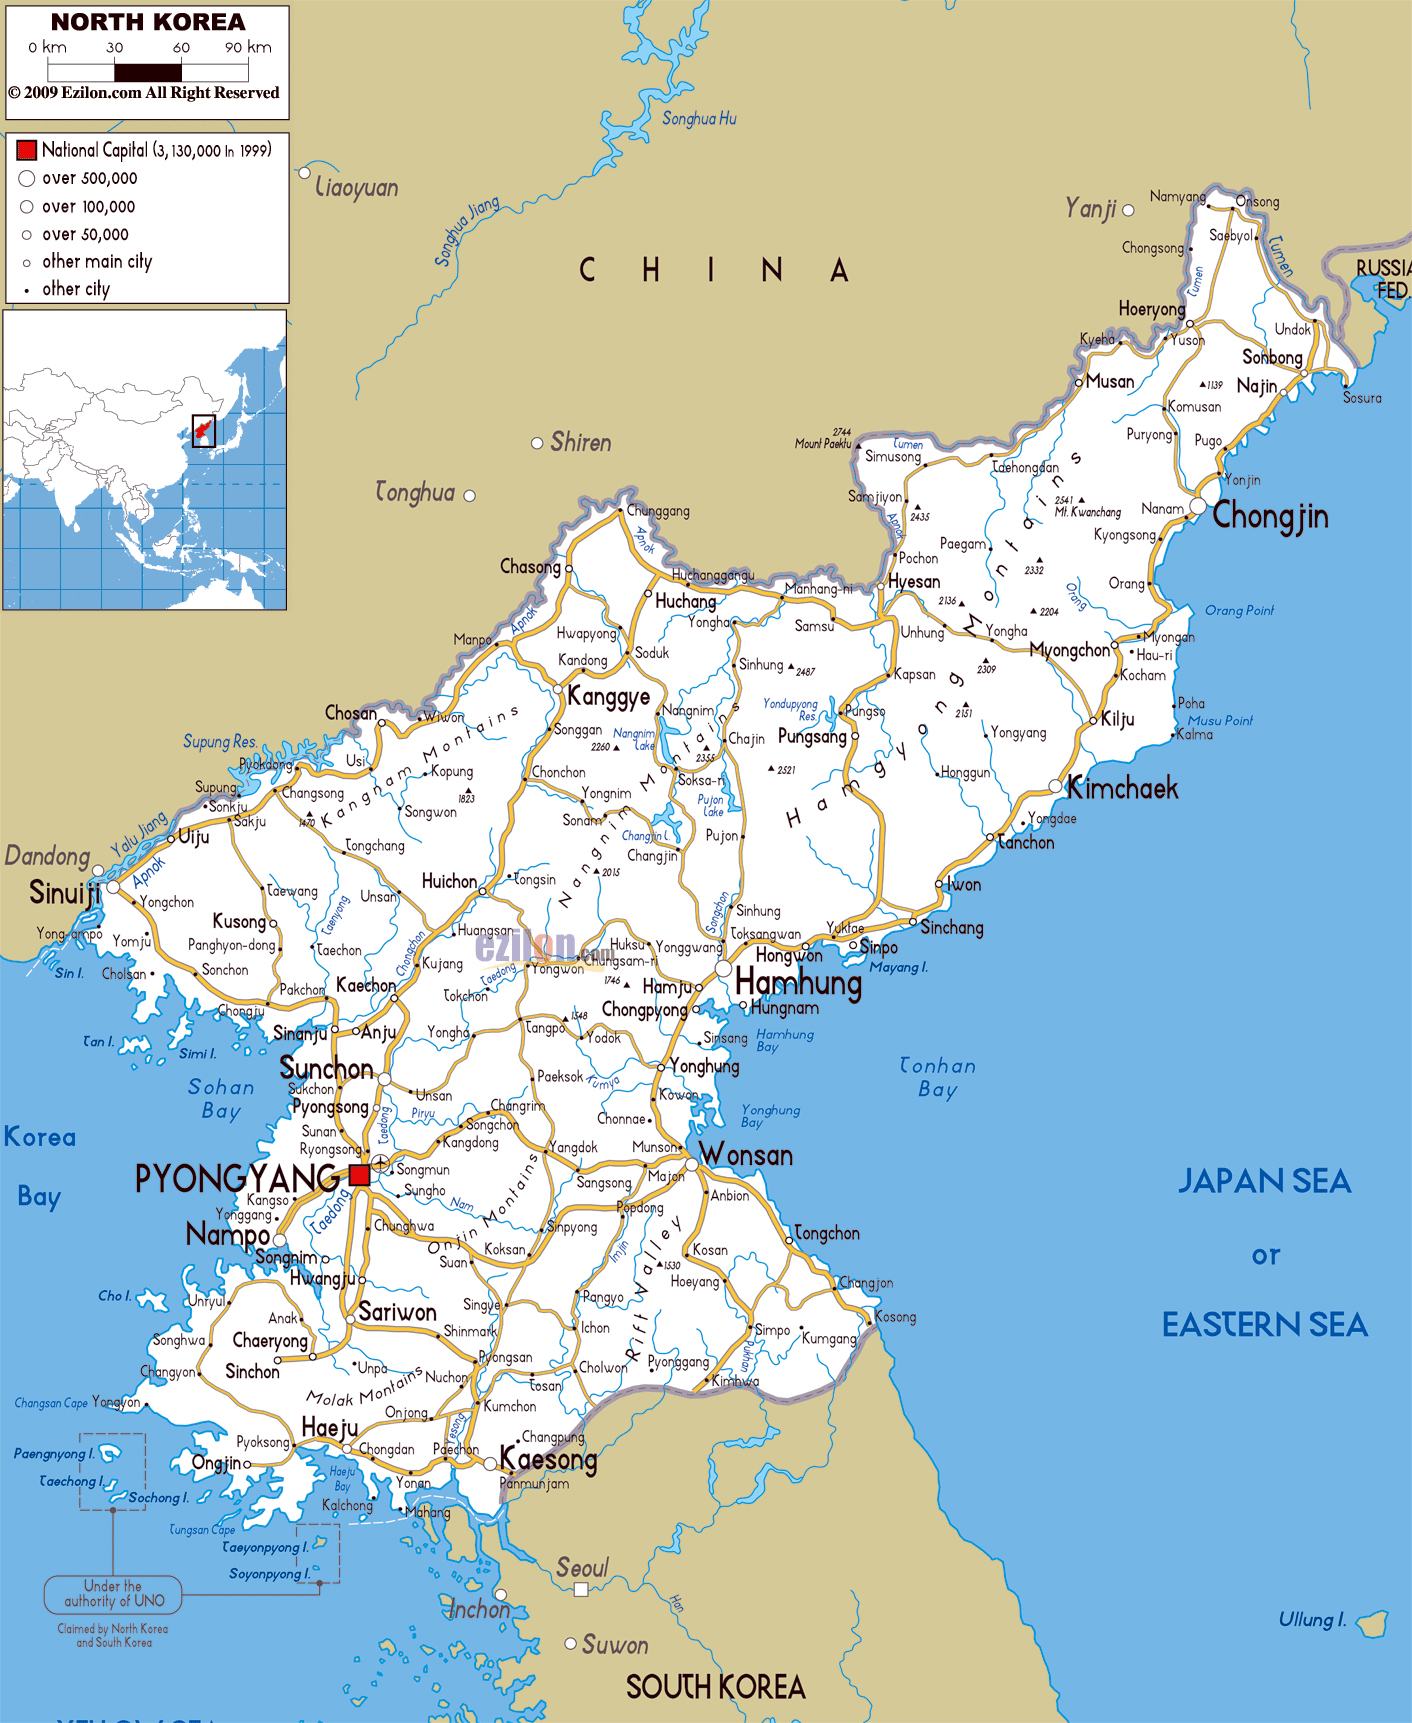 Maps of north korea dprk detailed map of north korea in english large road map of north korea with cities and airports gumiabroncs Choice Image